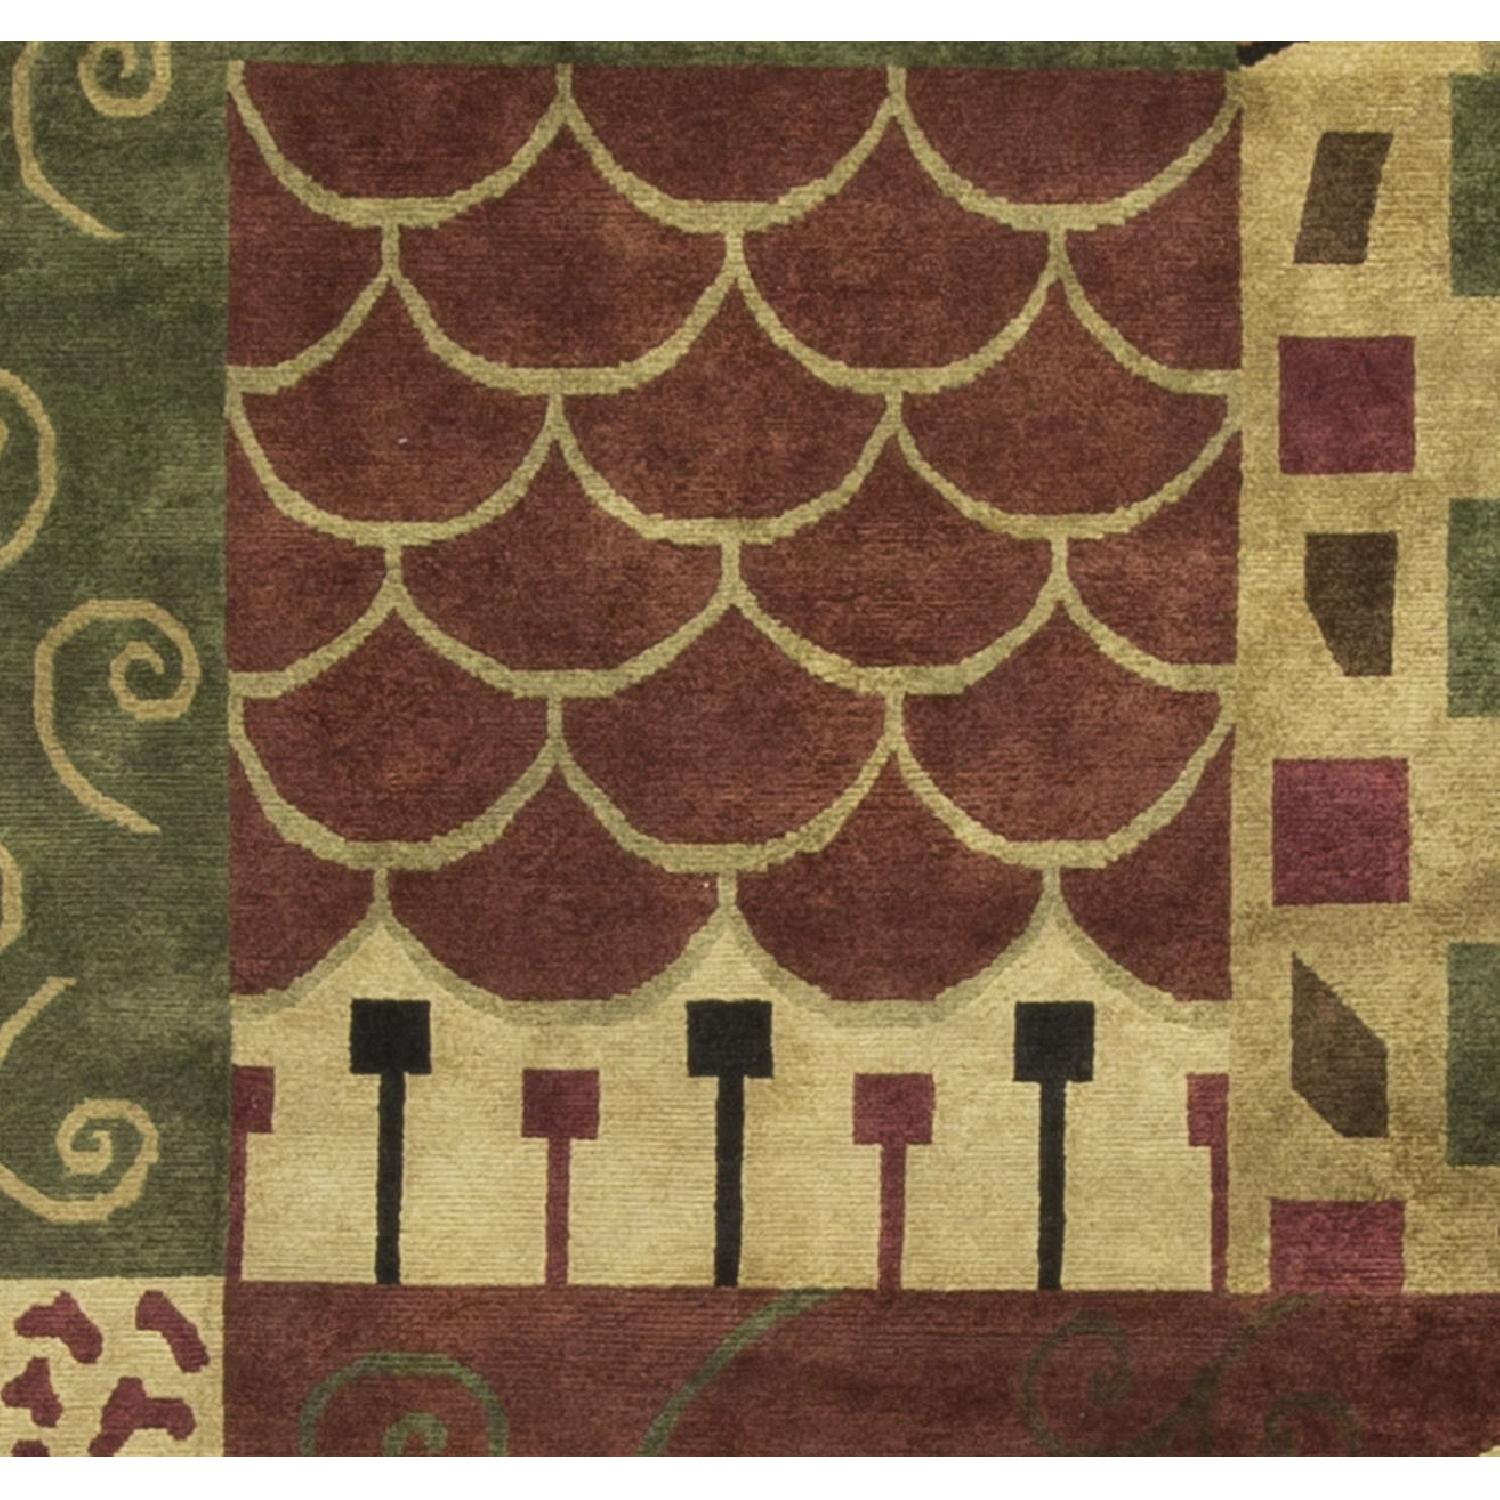 Modern Contemporary Hand Knotted Wool Rug in Beige/Red/Black/Green - image-2